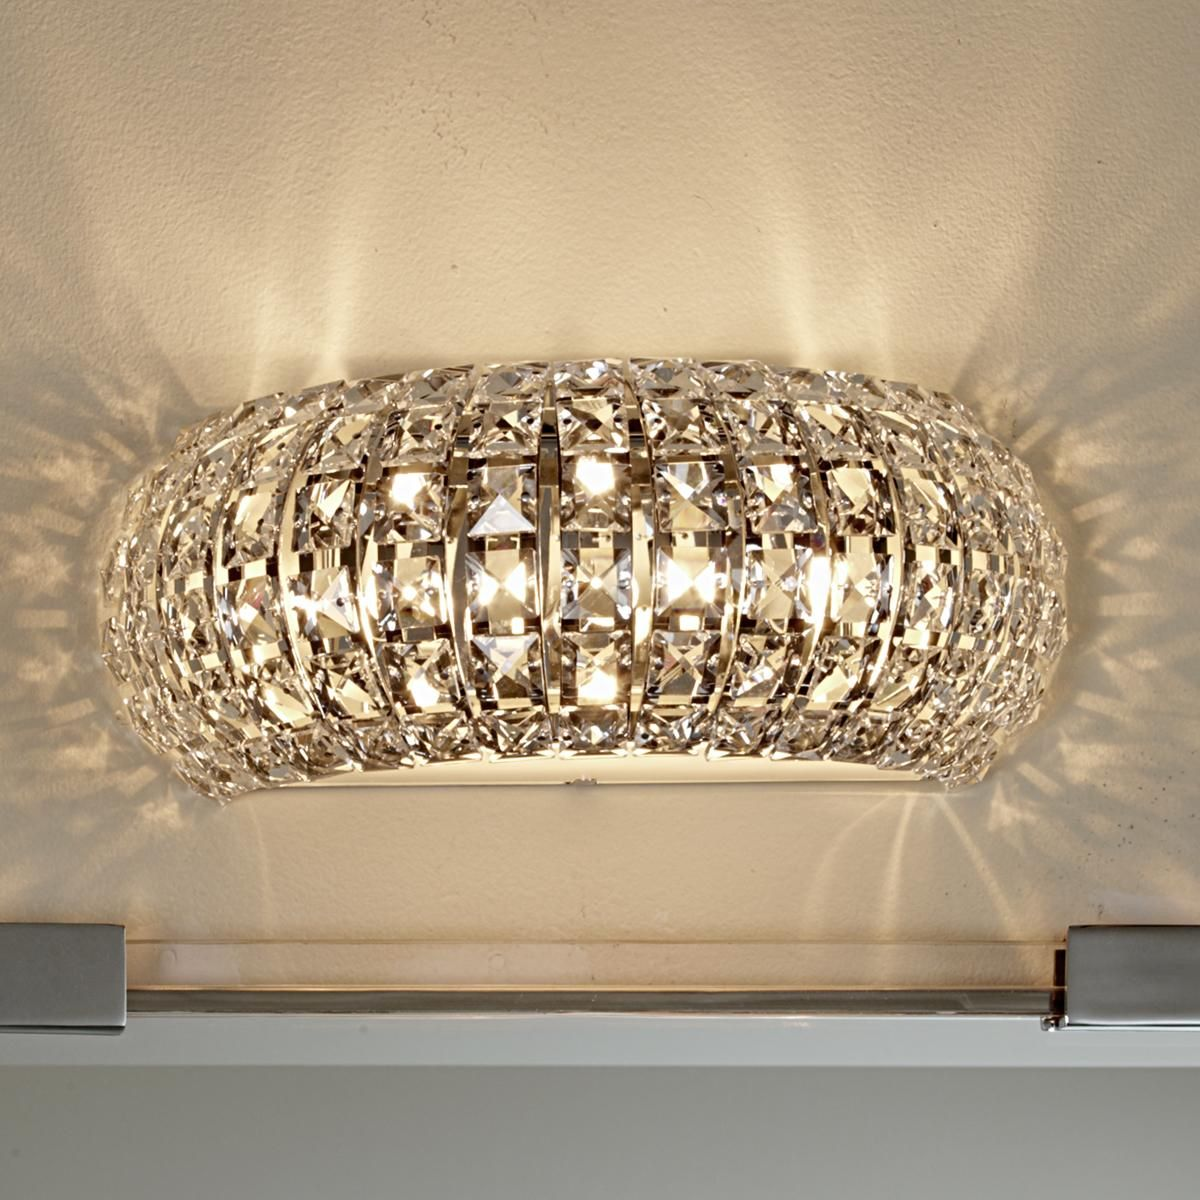 Bathroom Crystal Wall Sconce Light Wall Lighting Hollywood Glam ...